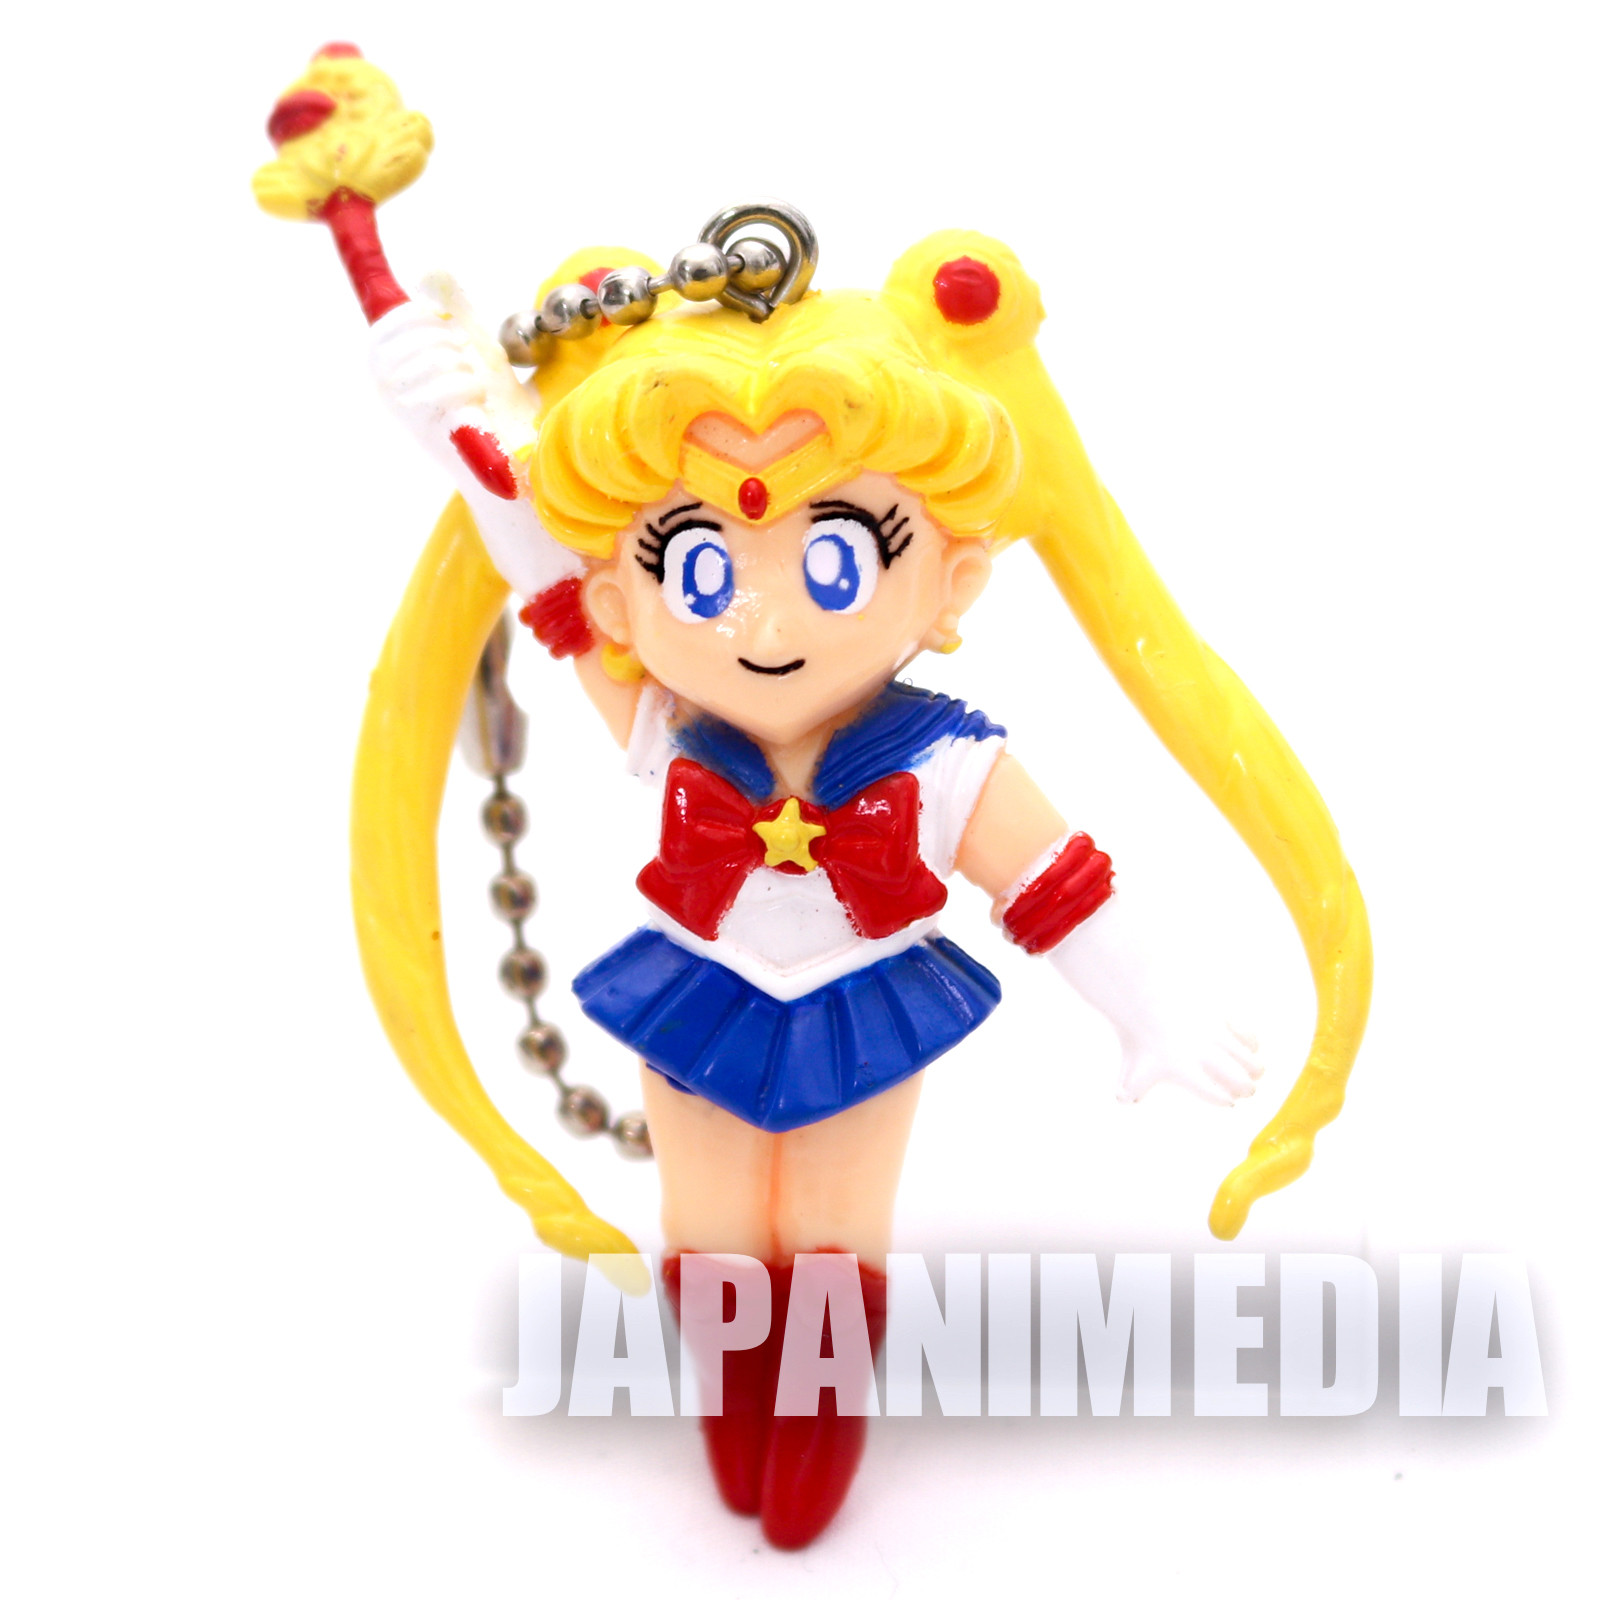 Sailor Moon Usagi Tsukino Figure Ballchain JAPAN ANIME MANGA